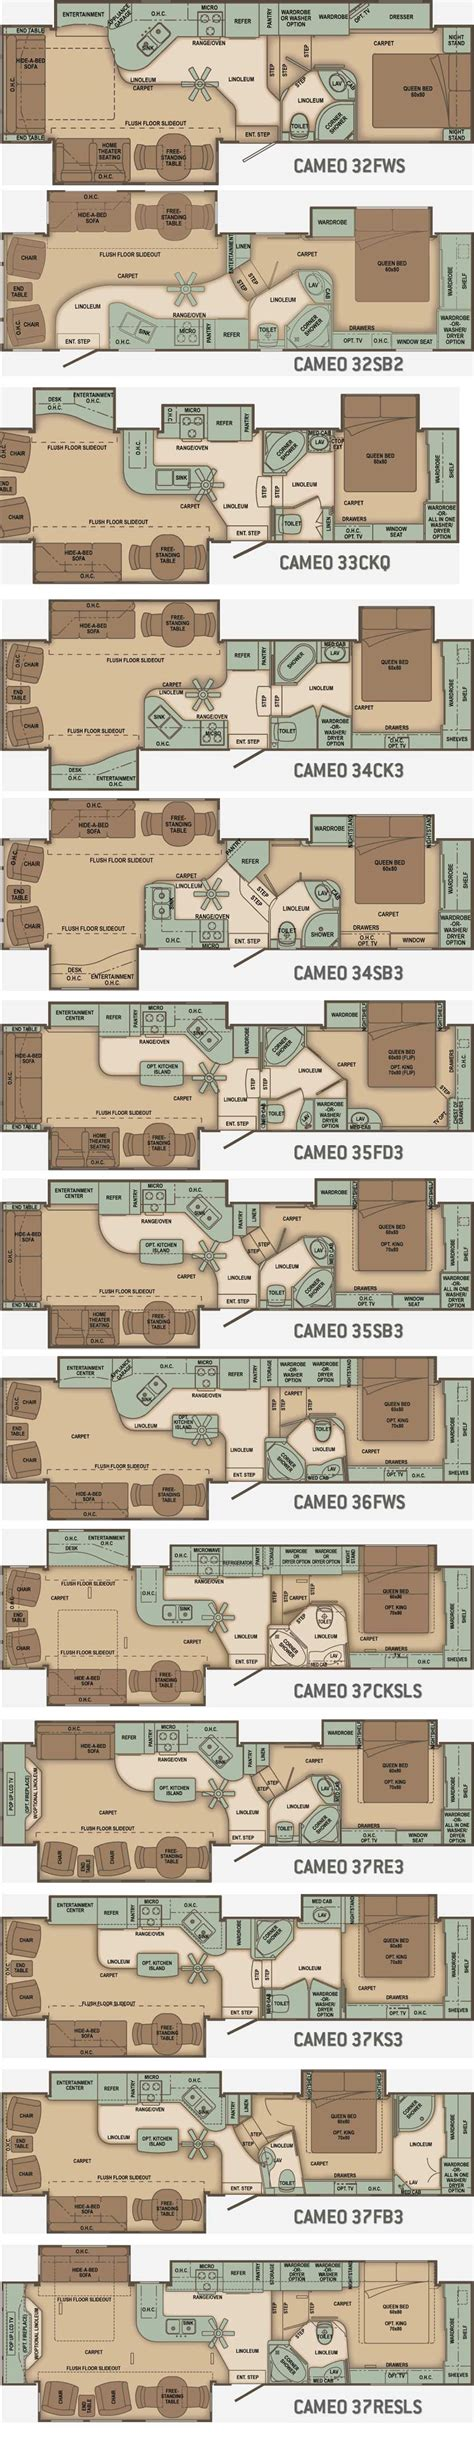 carriage rv floor plans carriage cameo fifth wheel floorplans large picture